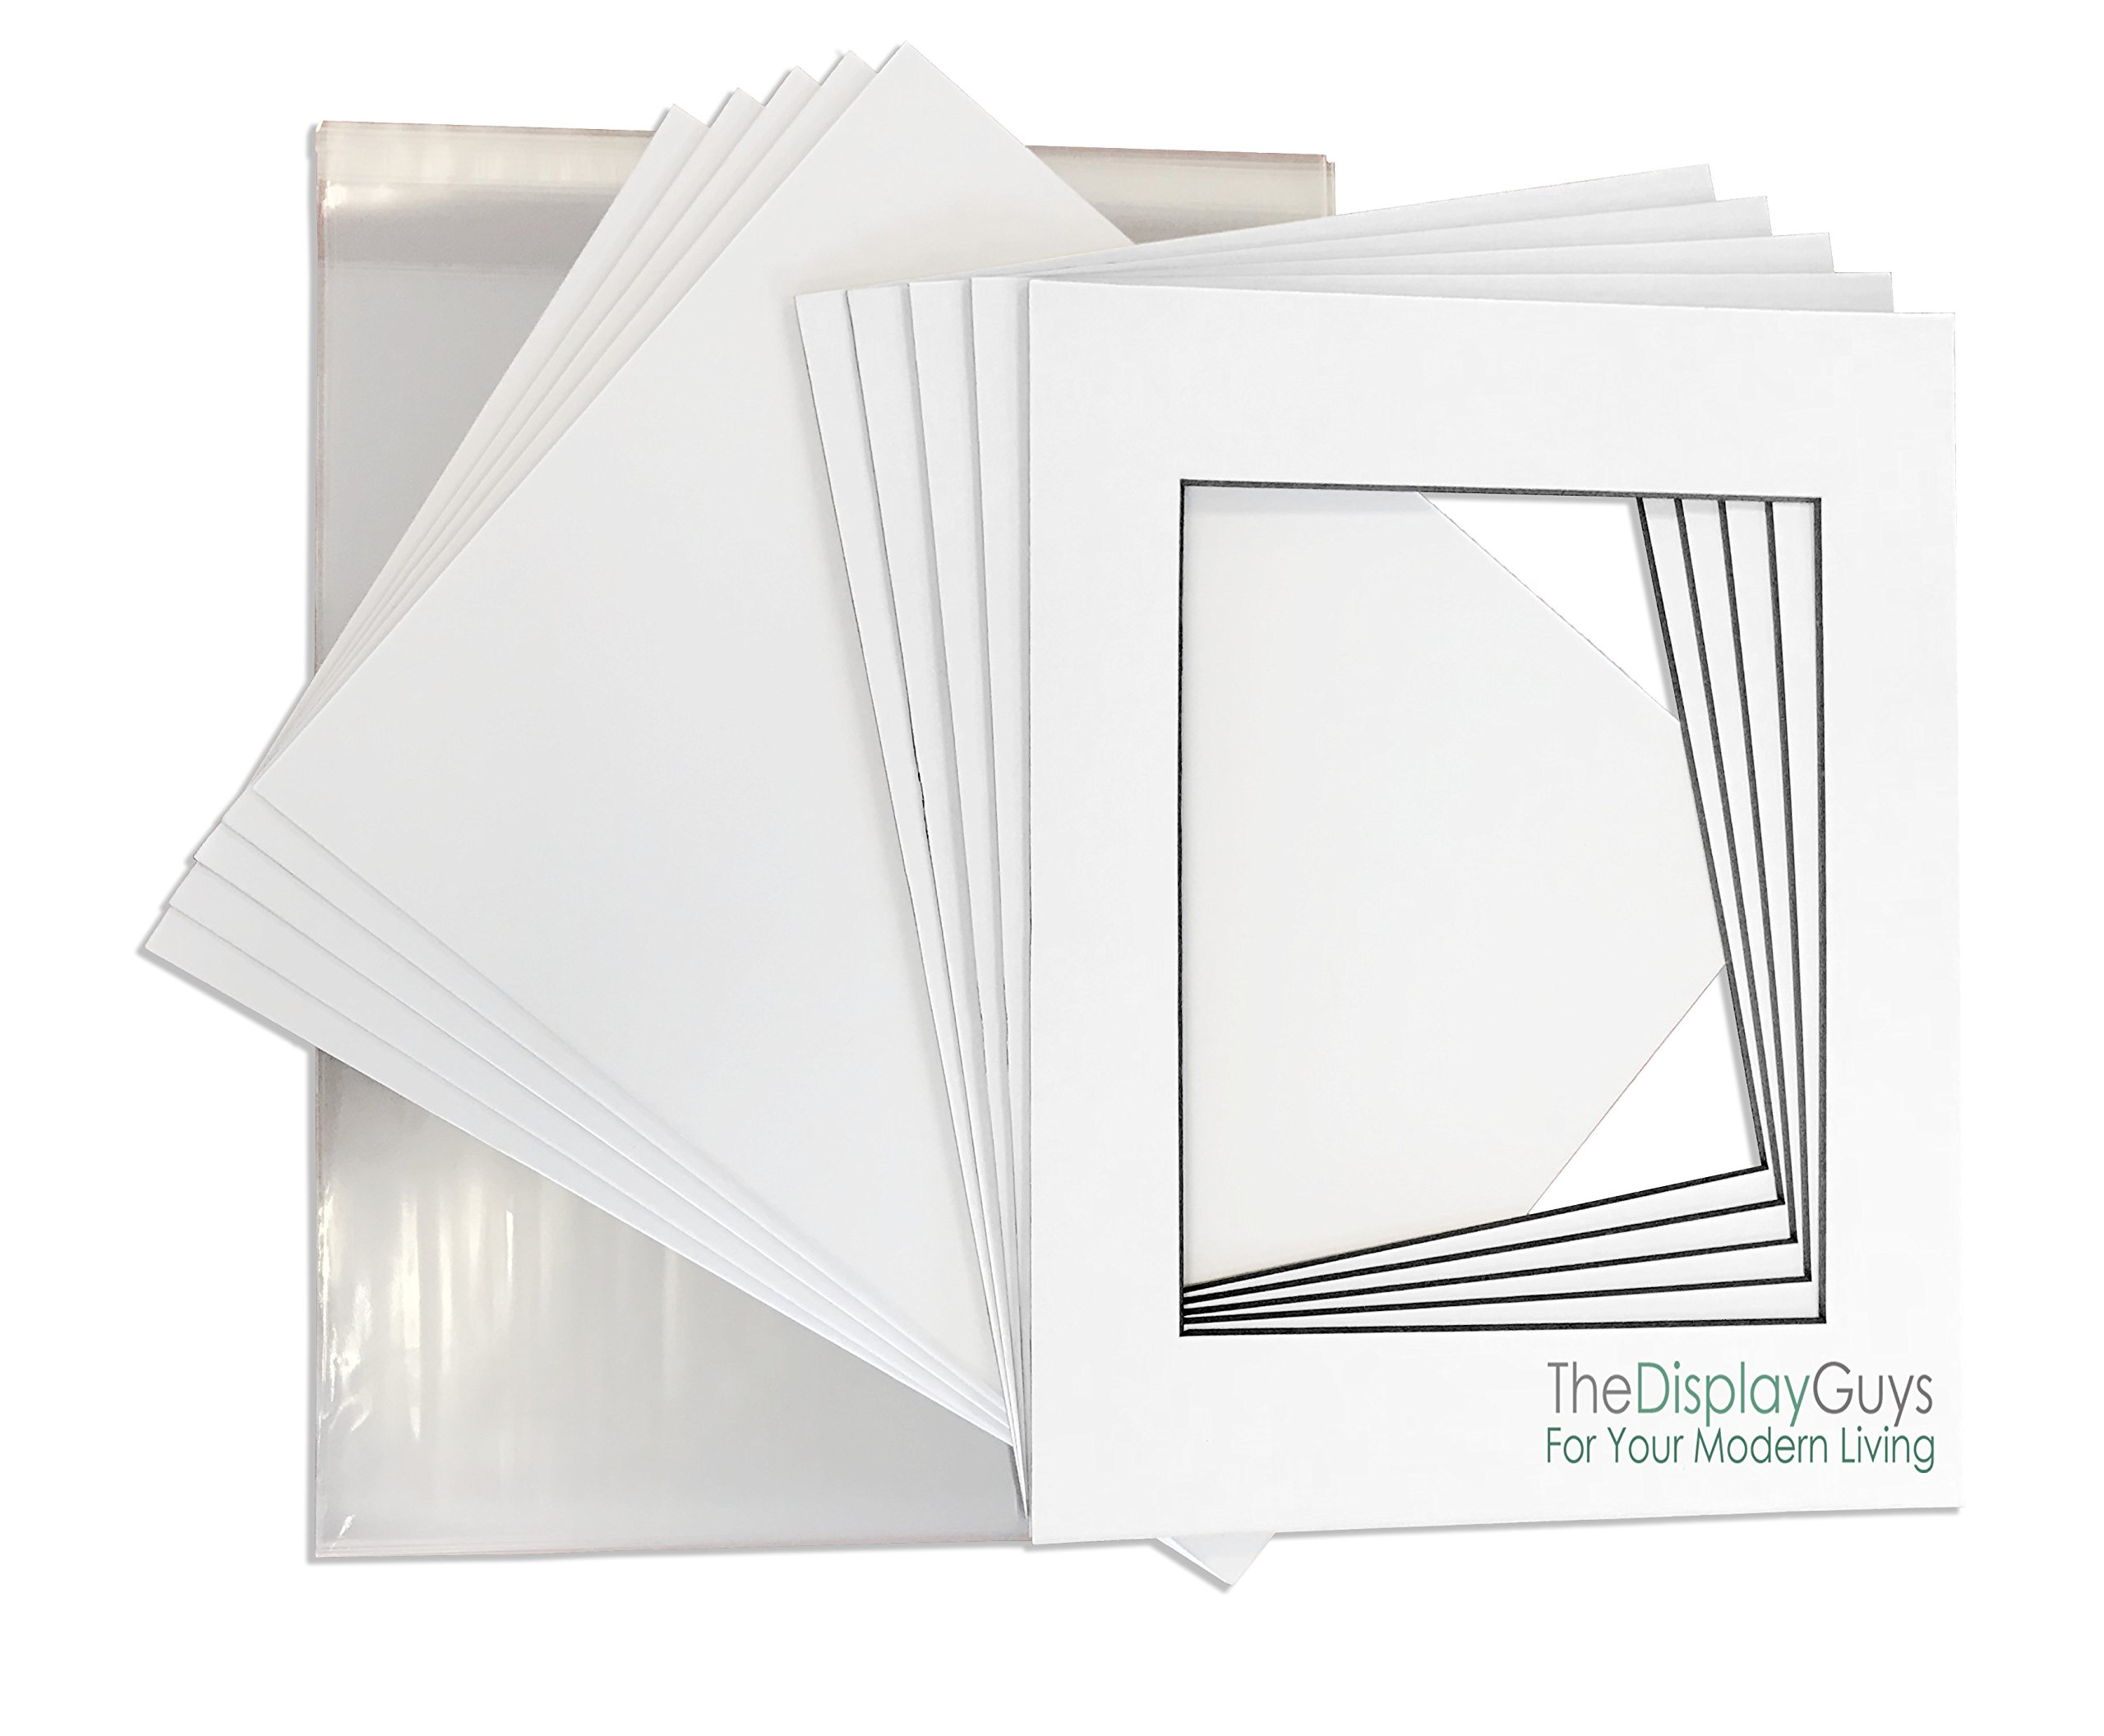 THE DISPLAY GUYS Professional 16x20 Pack of 25 Deluxe White w/Black Core Picture Photo Matting Mat Boards + Backing Boards + Clear Plastic Bags Complete Set